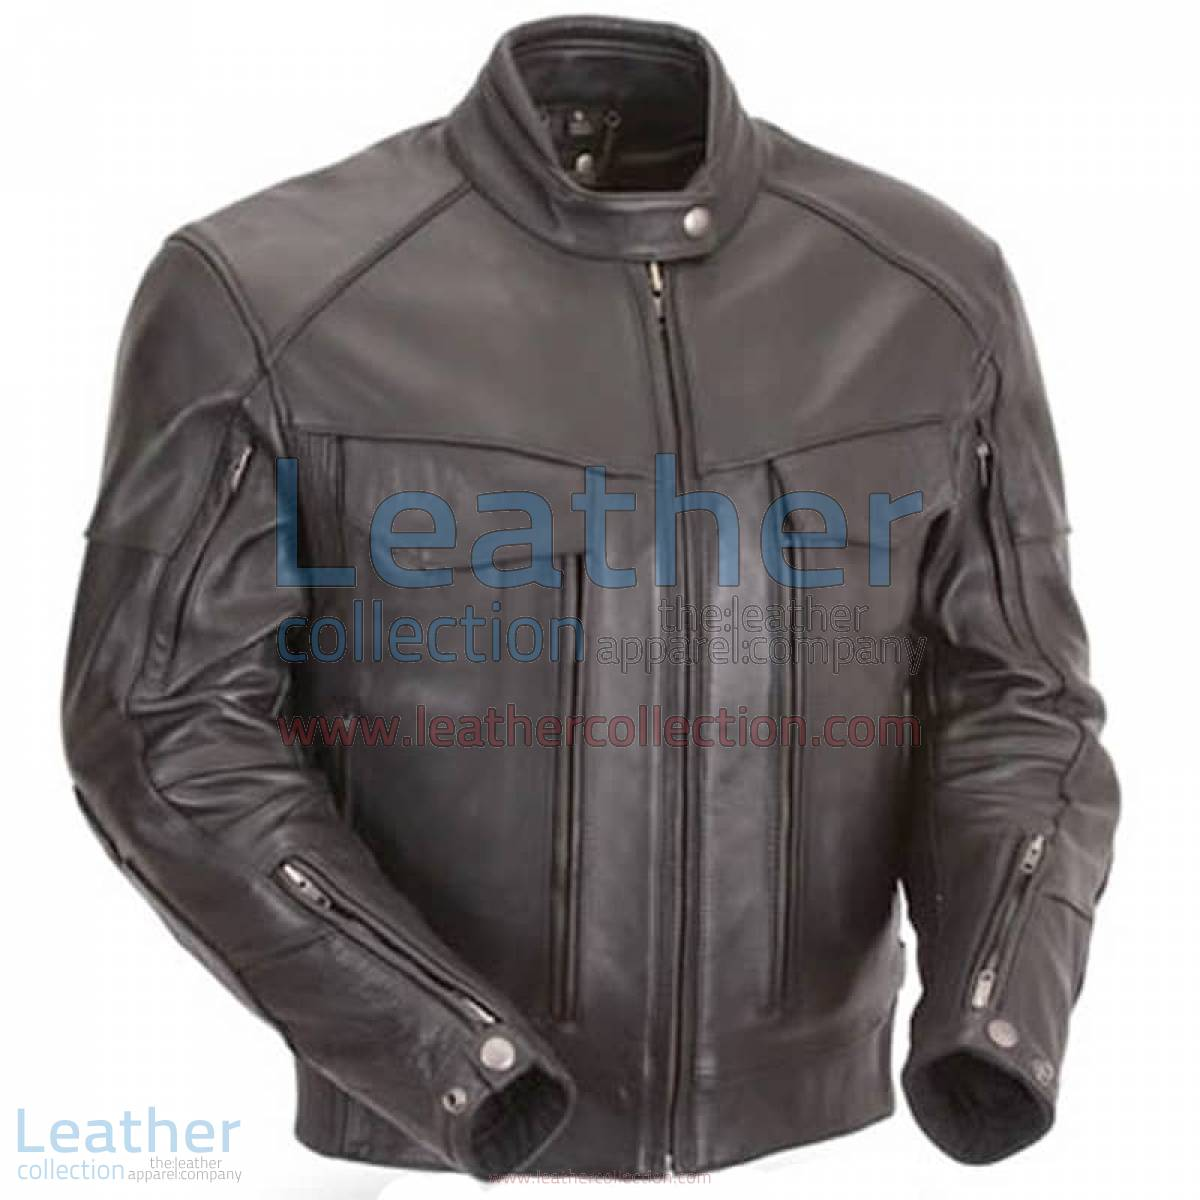 Naked Leather Riding Jacket with Gun Pockets & Side Stretch Panels | leather riding jacket